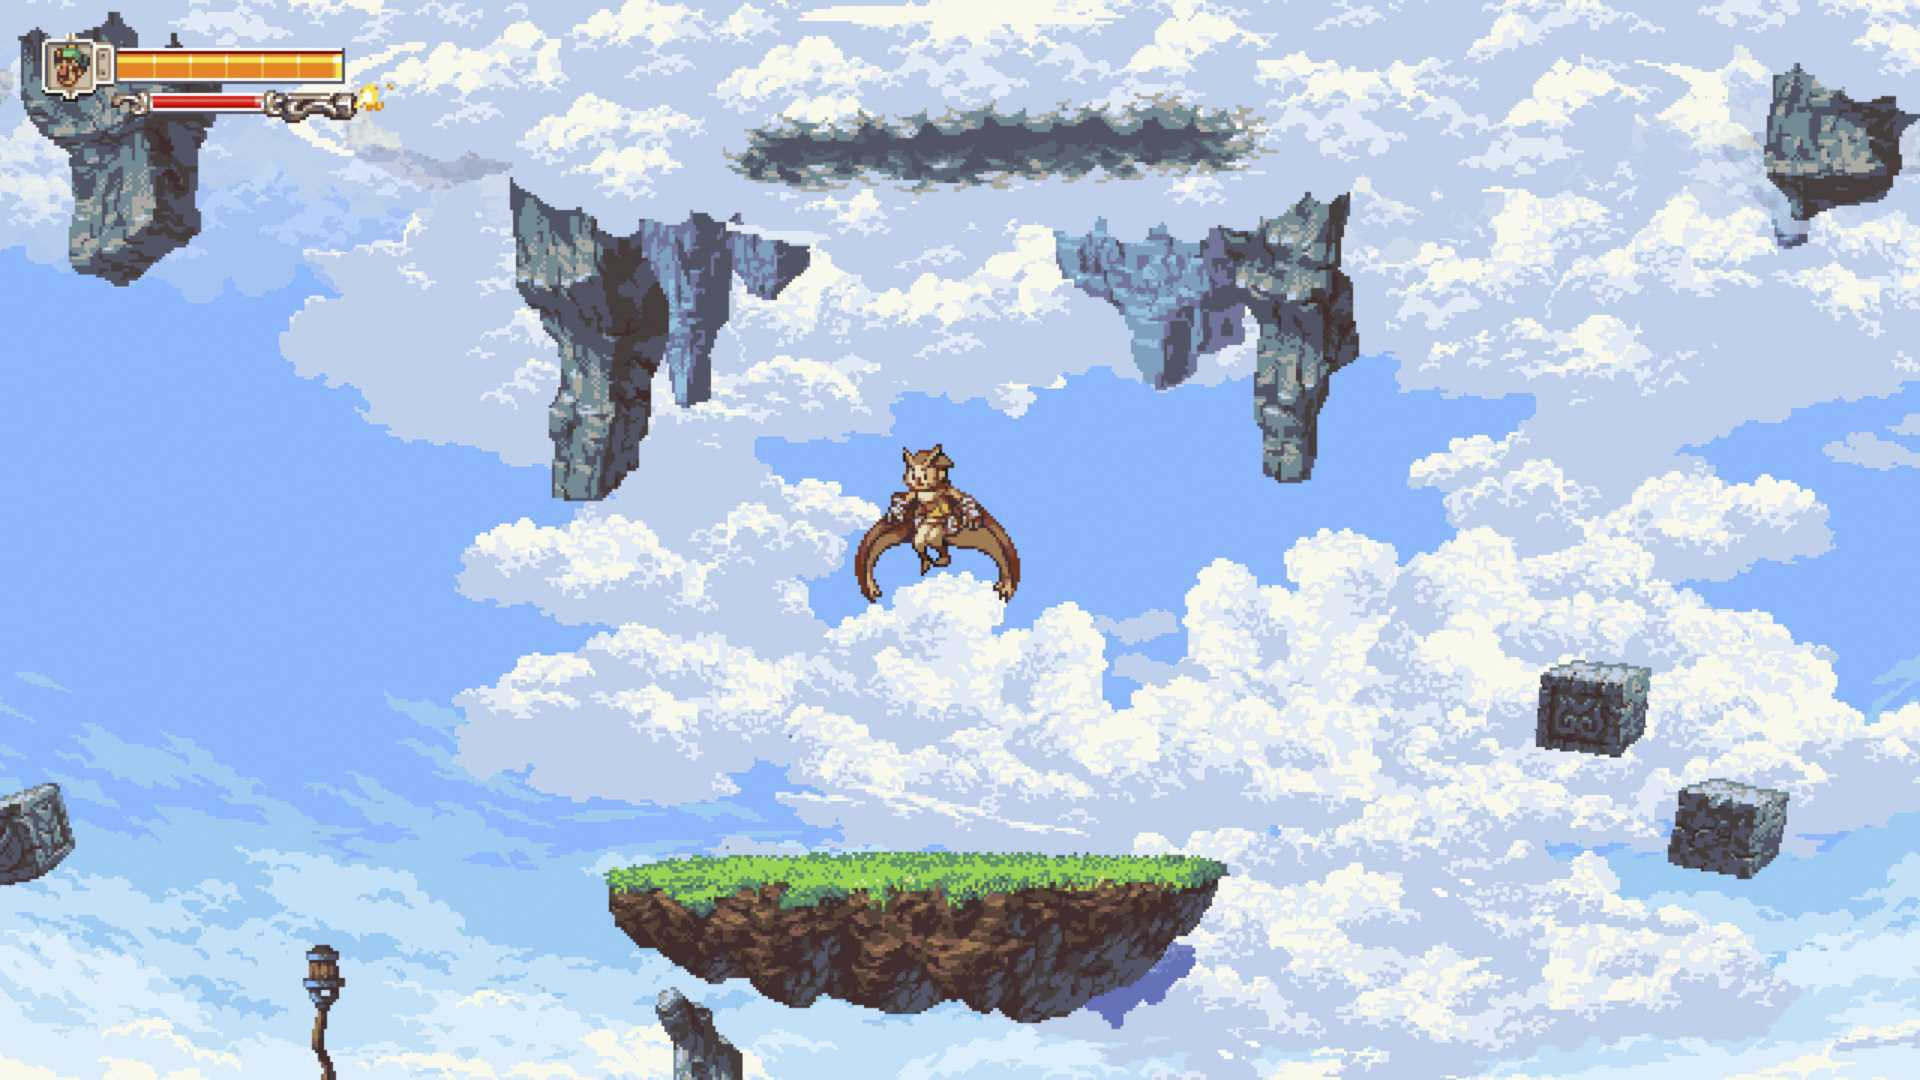 A young owl named Otus embarks on an airborne adventure in D-Pad Studios' gorgeous Owlboy.